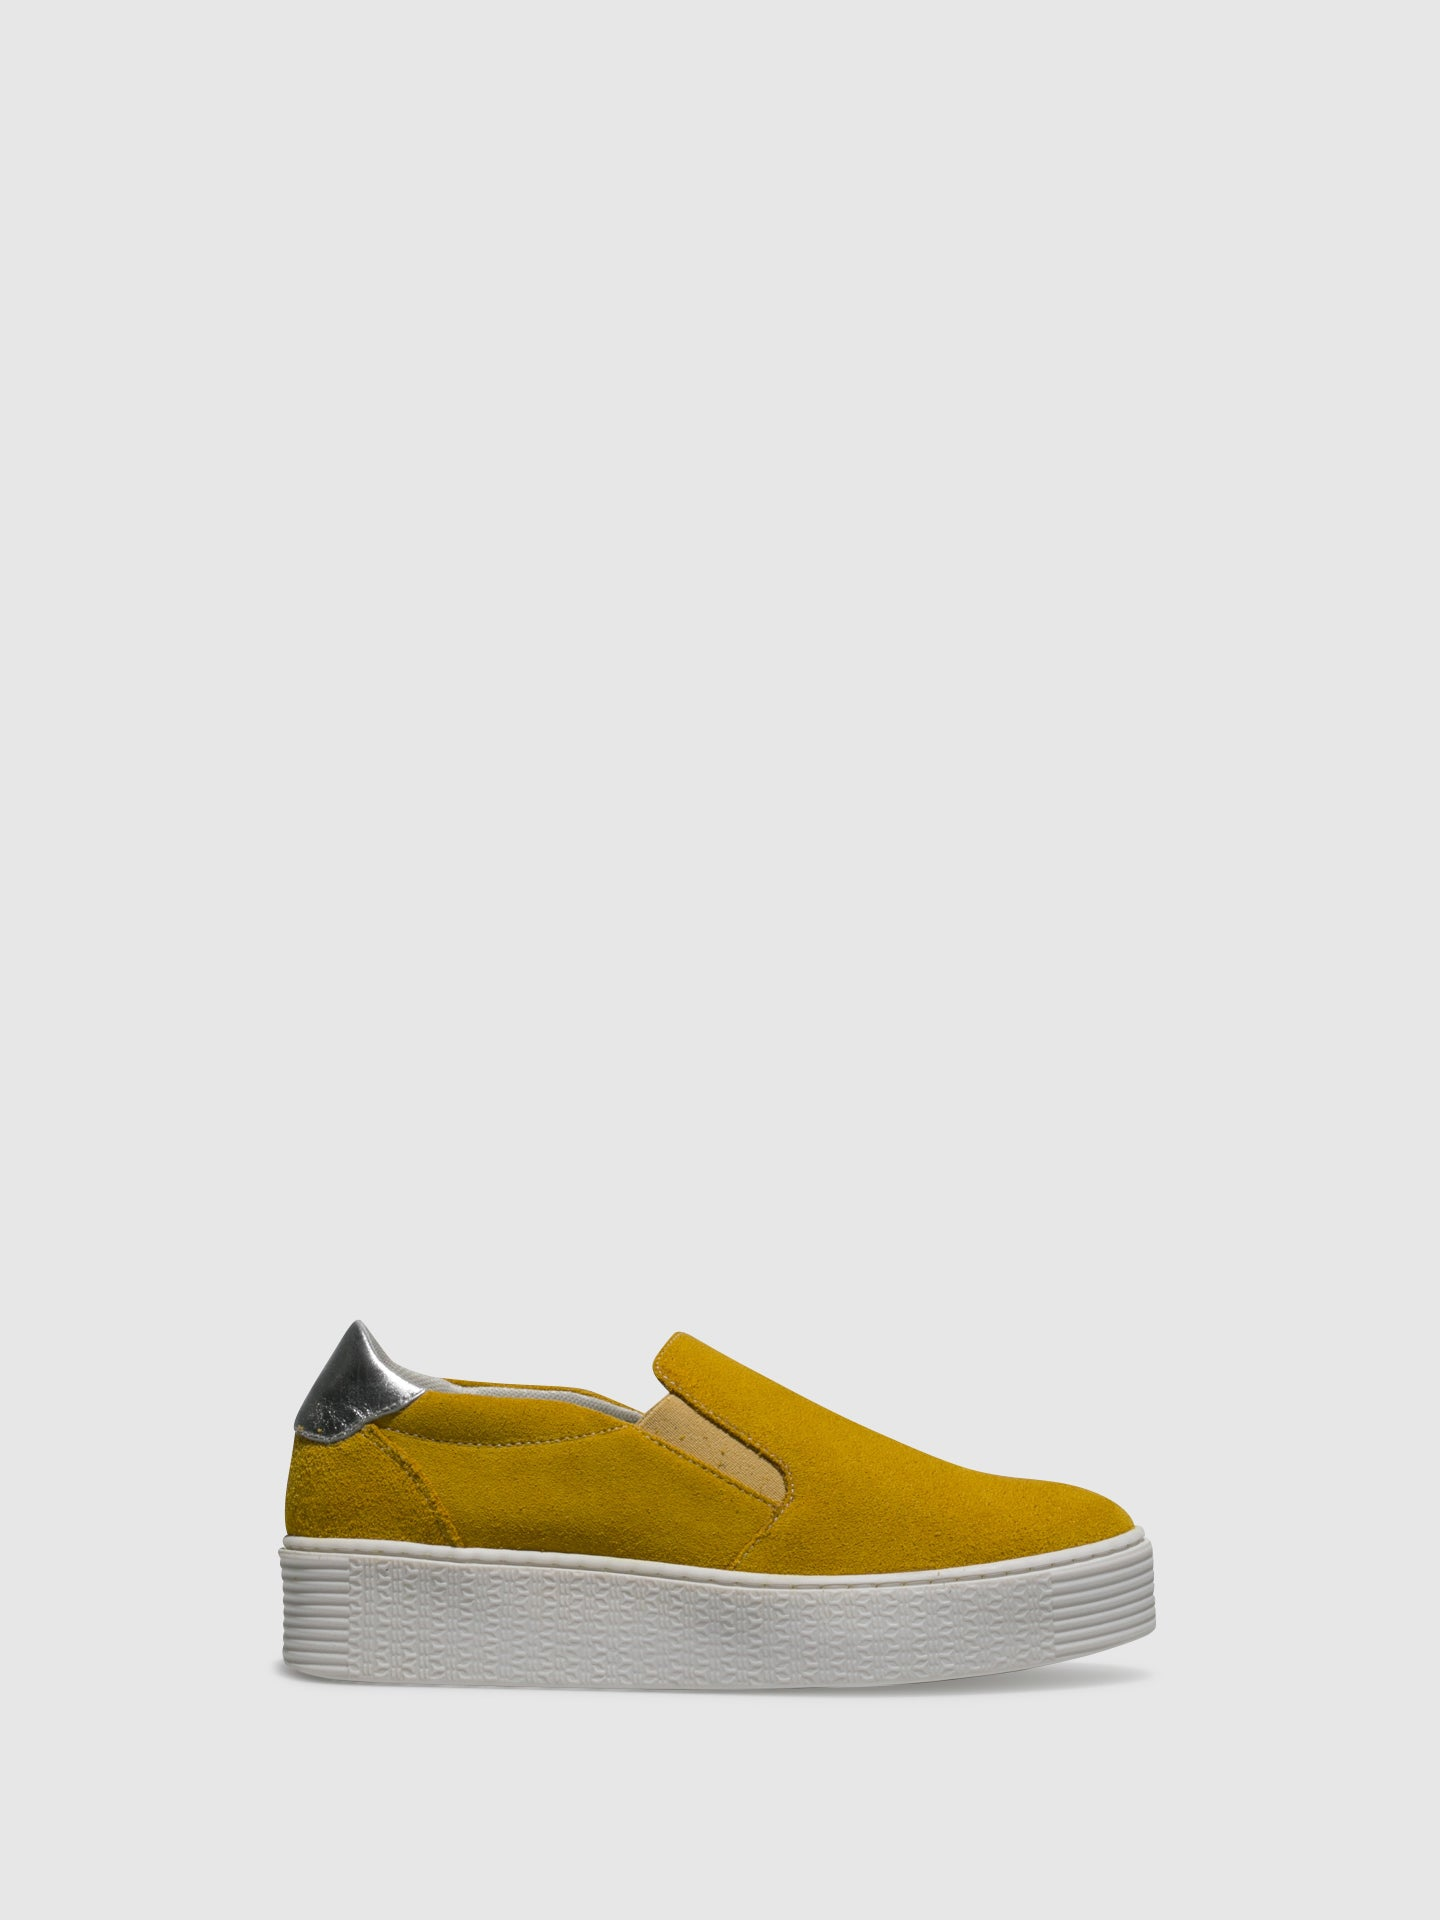 Bos&Co Yellow Slip-on Trainers